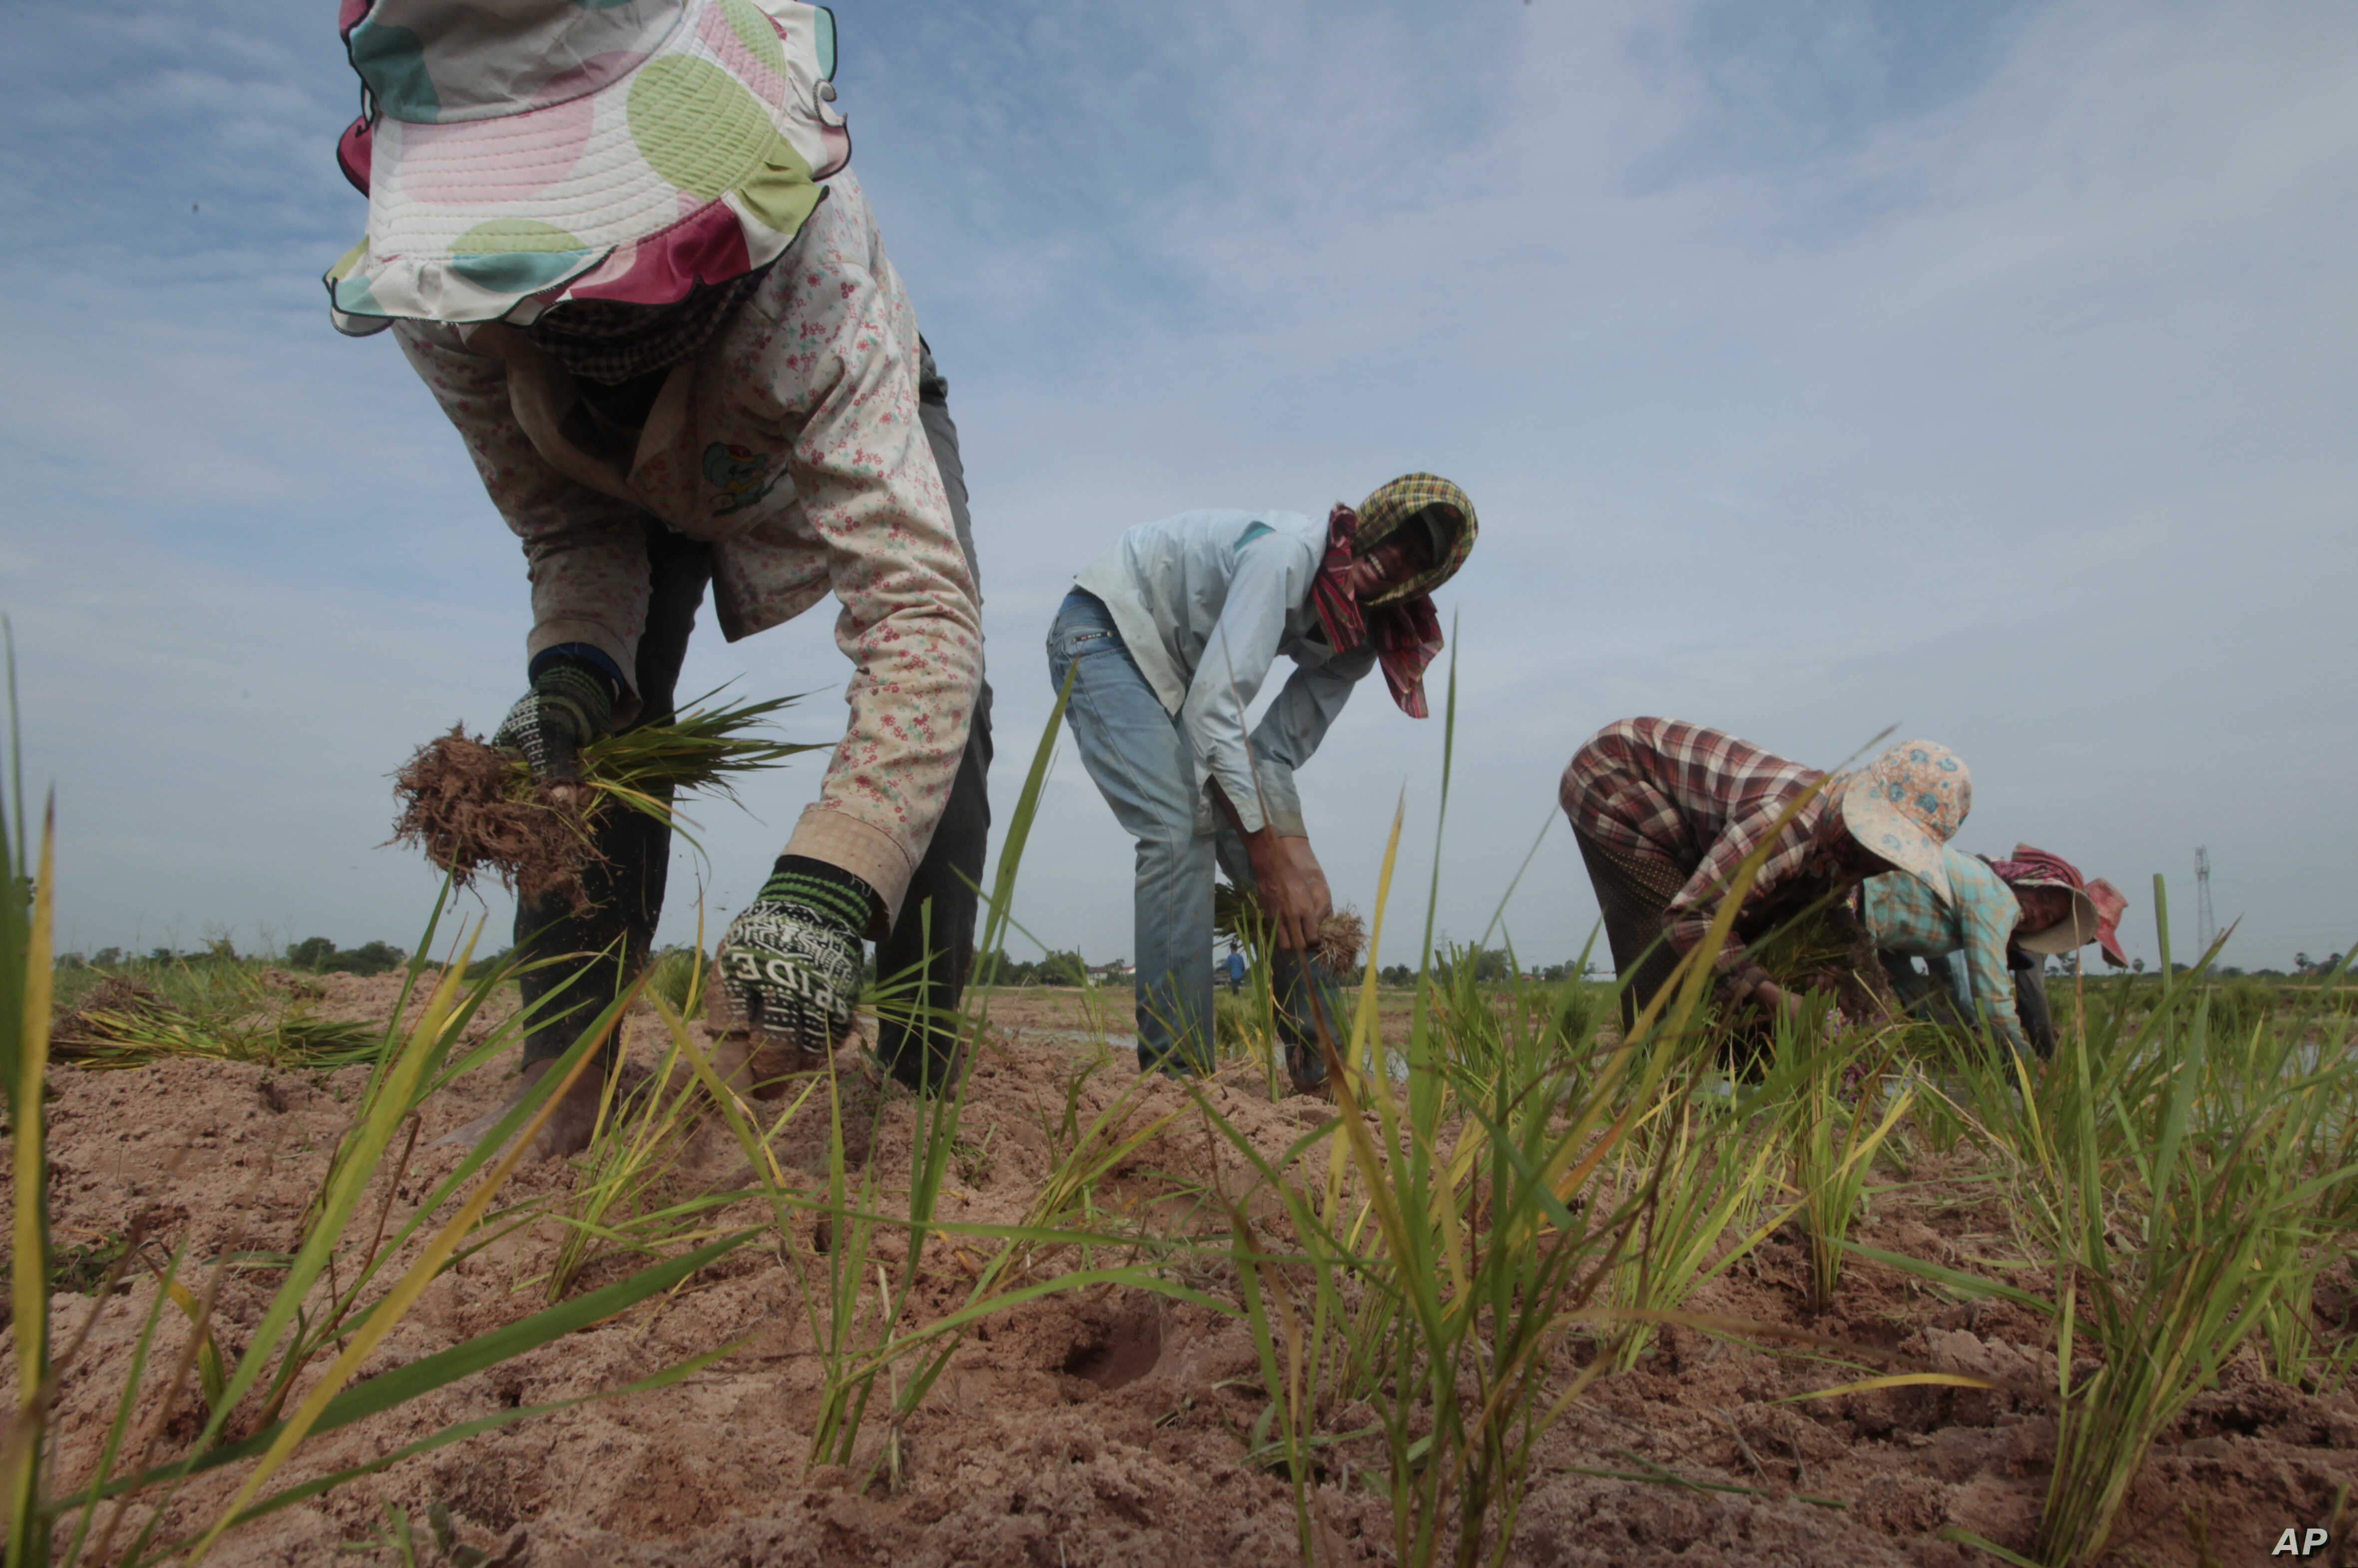 FILE - Cambodian farmers plant rice on the dry earth in the rice paddy on the outskirts of Phnom Penh, Cambodia.